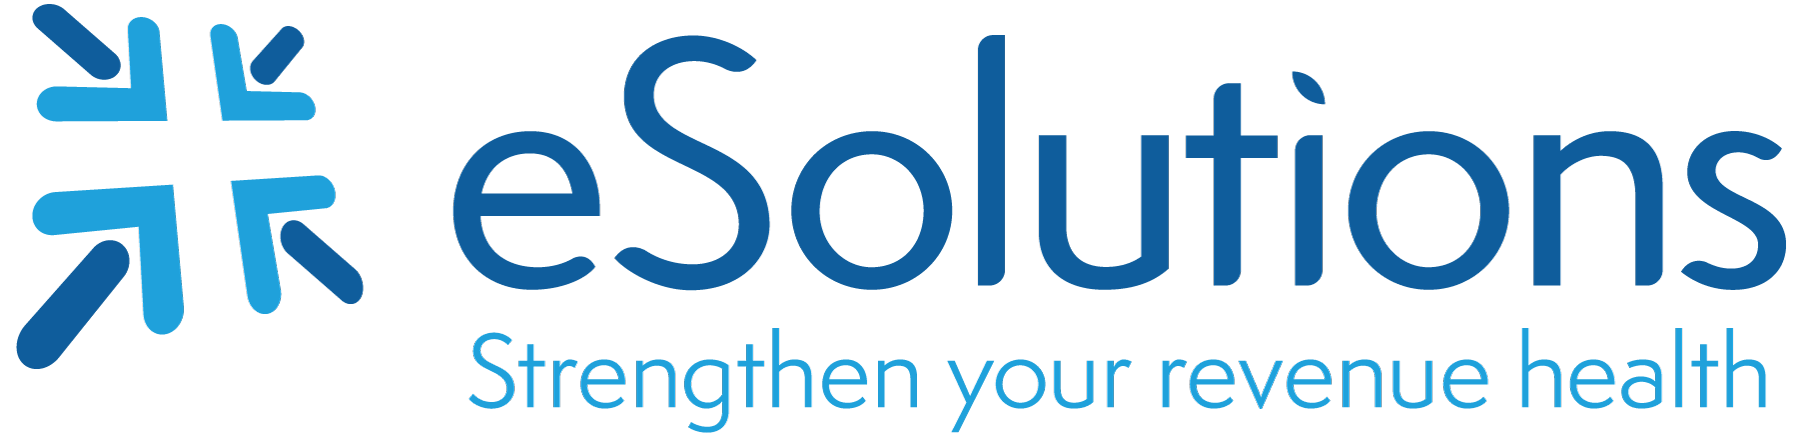 eSolutions Acquires Medidal to Strengthen Its Position in Hospital Revenue Recovery